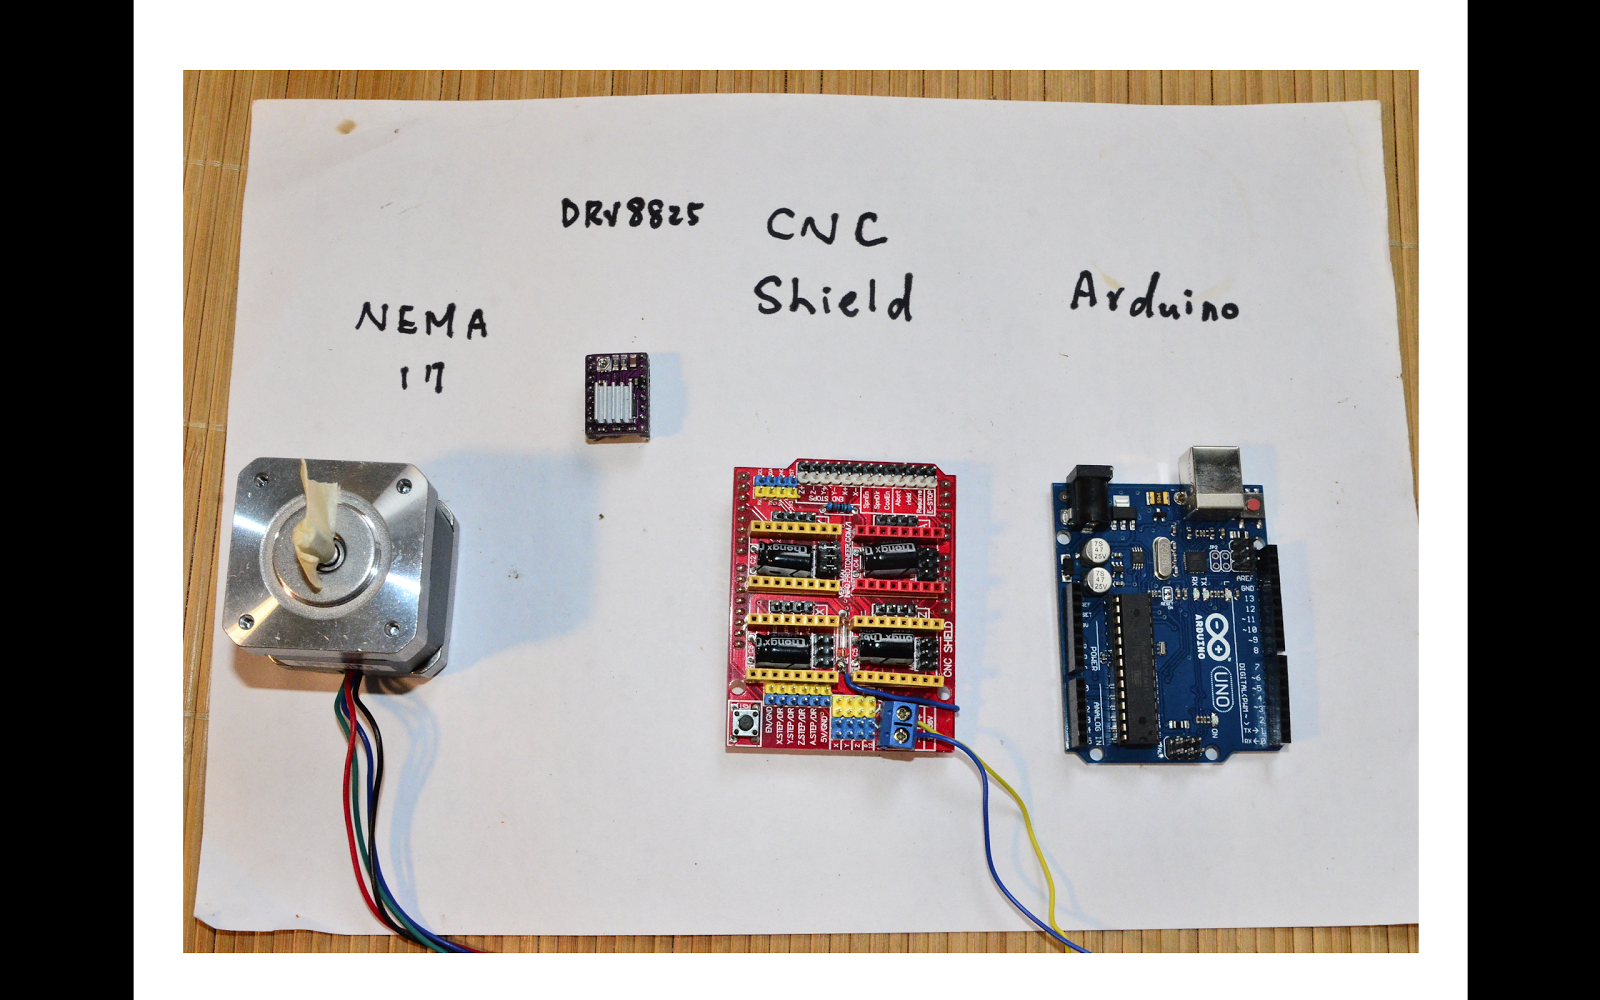 hight resolution of cnc shield is quite useful for stepper motor driving here i demonstrated how to use simple arduino code to drive stepper motor with drv8825